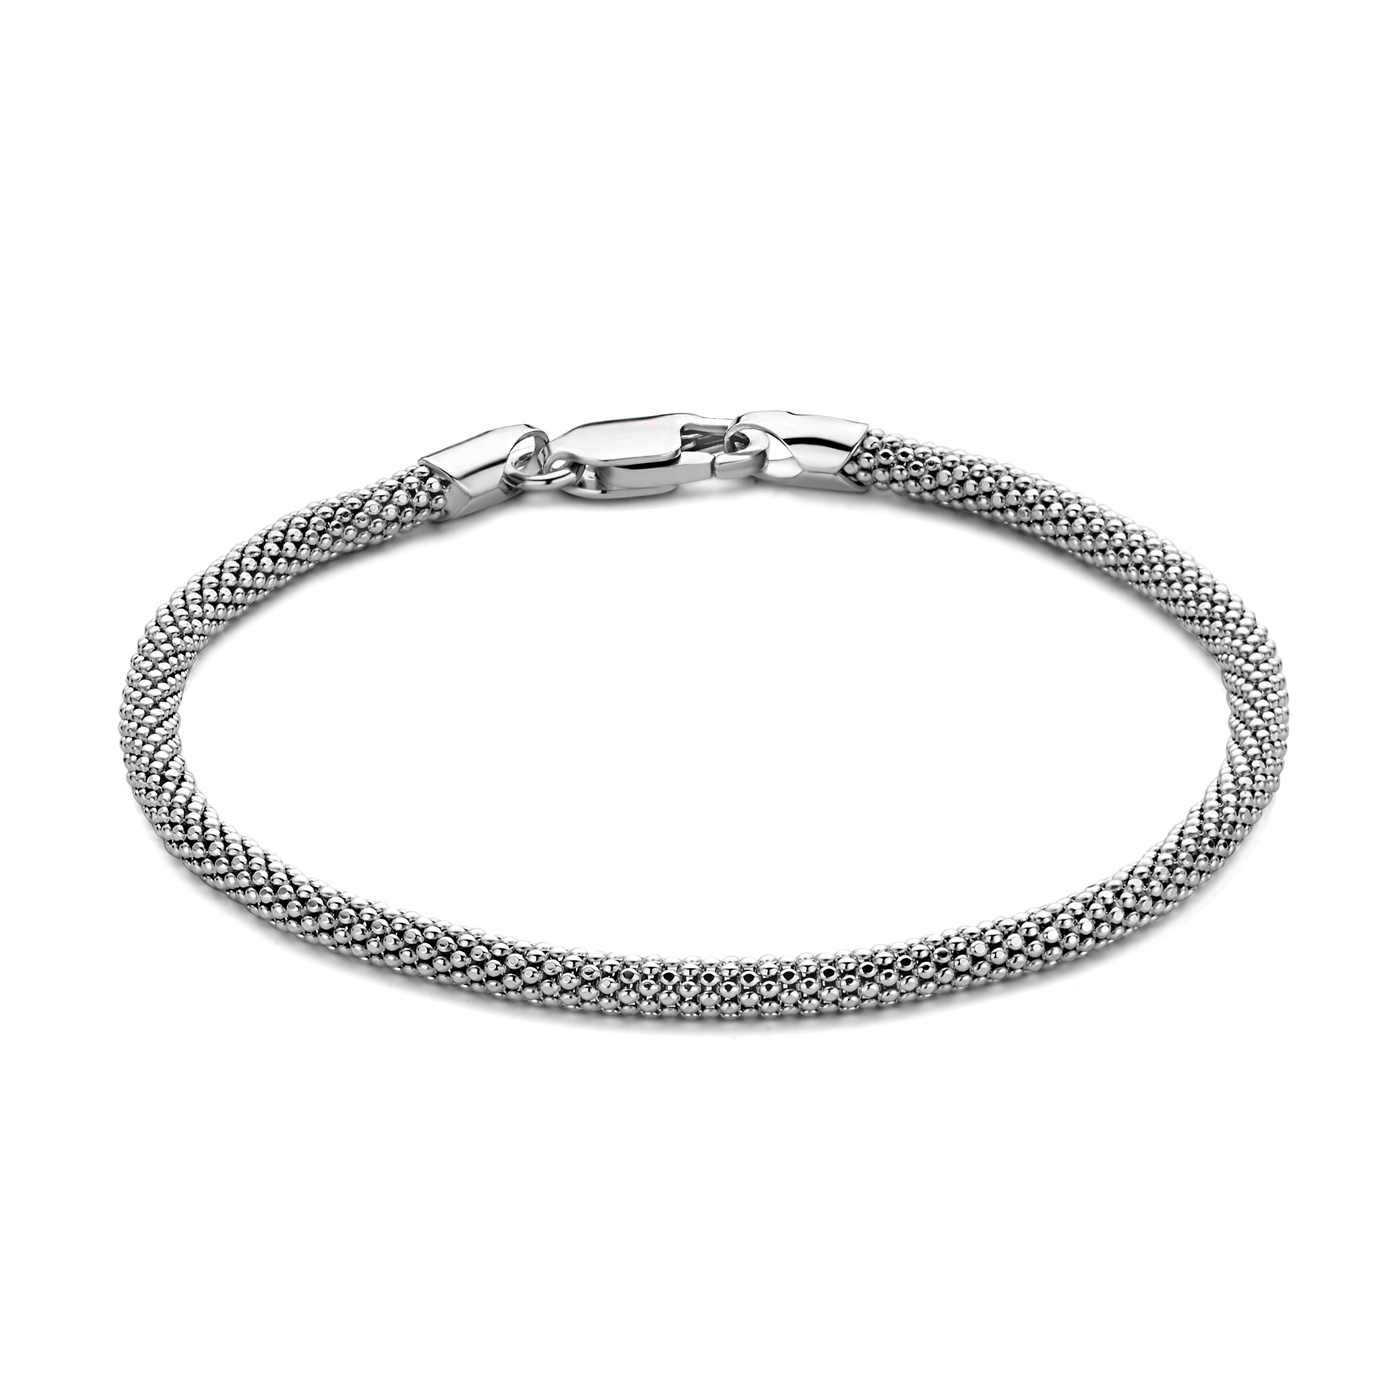 Selected Jewels Lina Mira 925 sterling silver bracelet